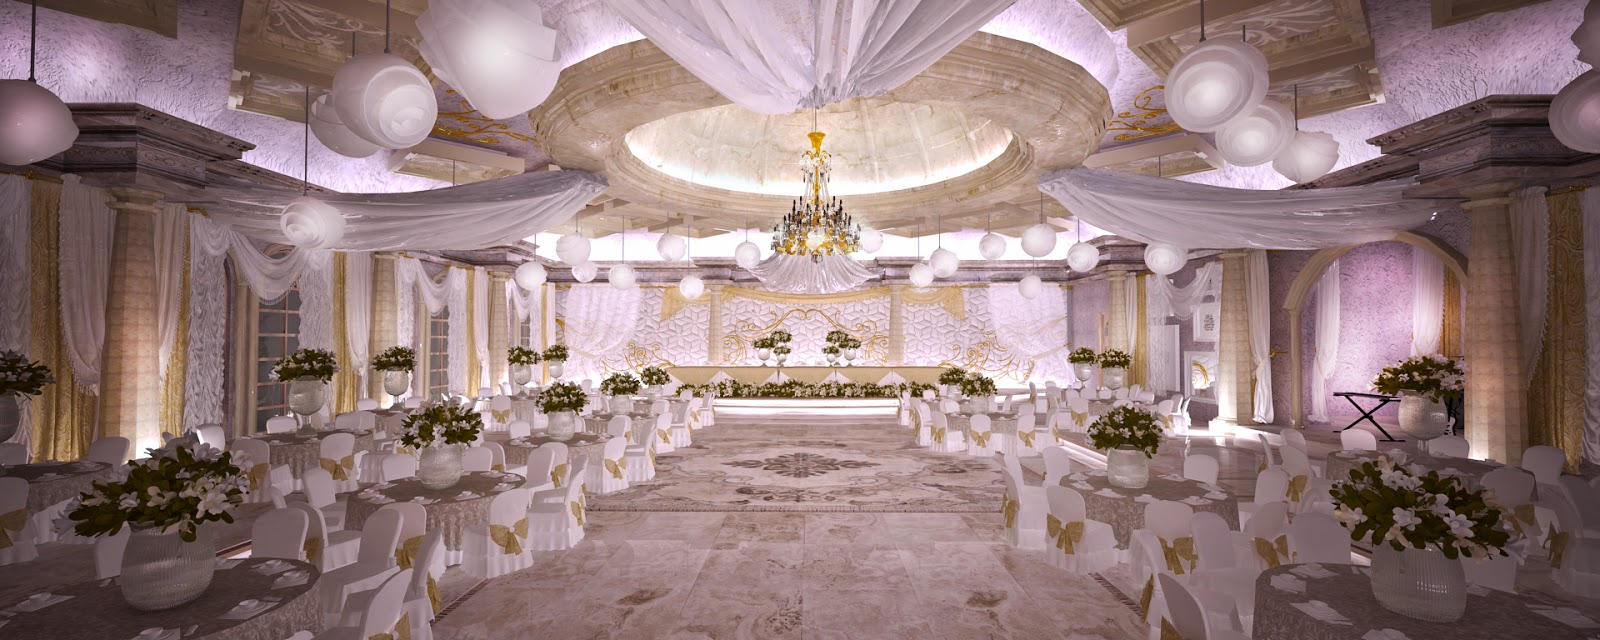 Classical elegant wedding room decor and project by Decoration for wedding room